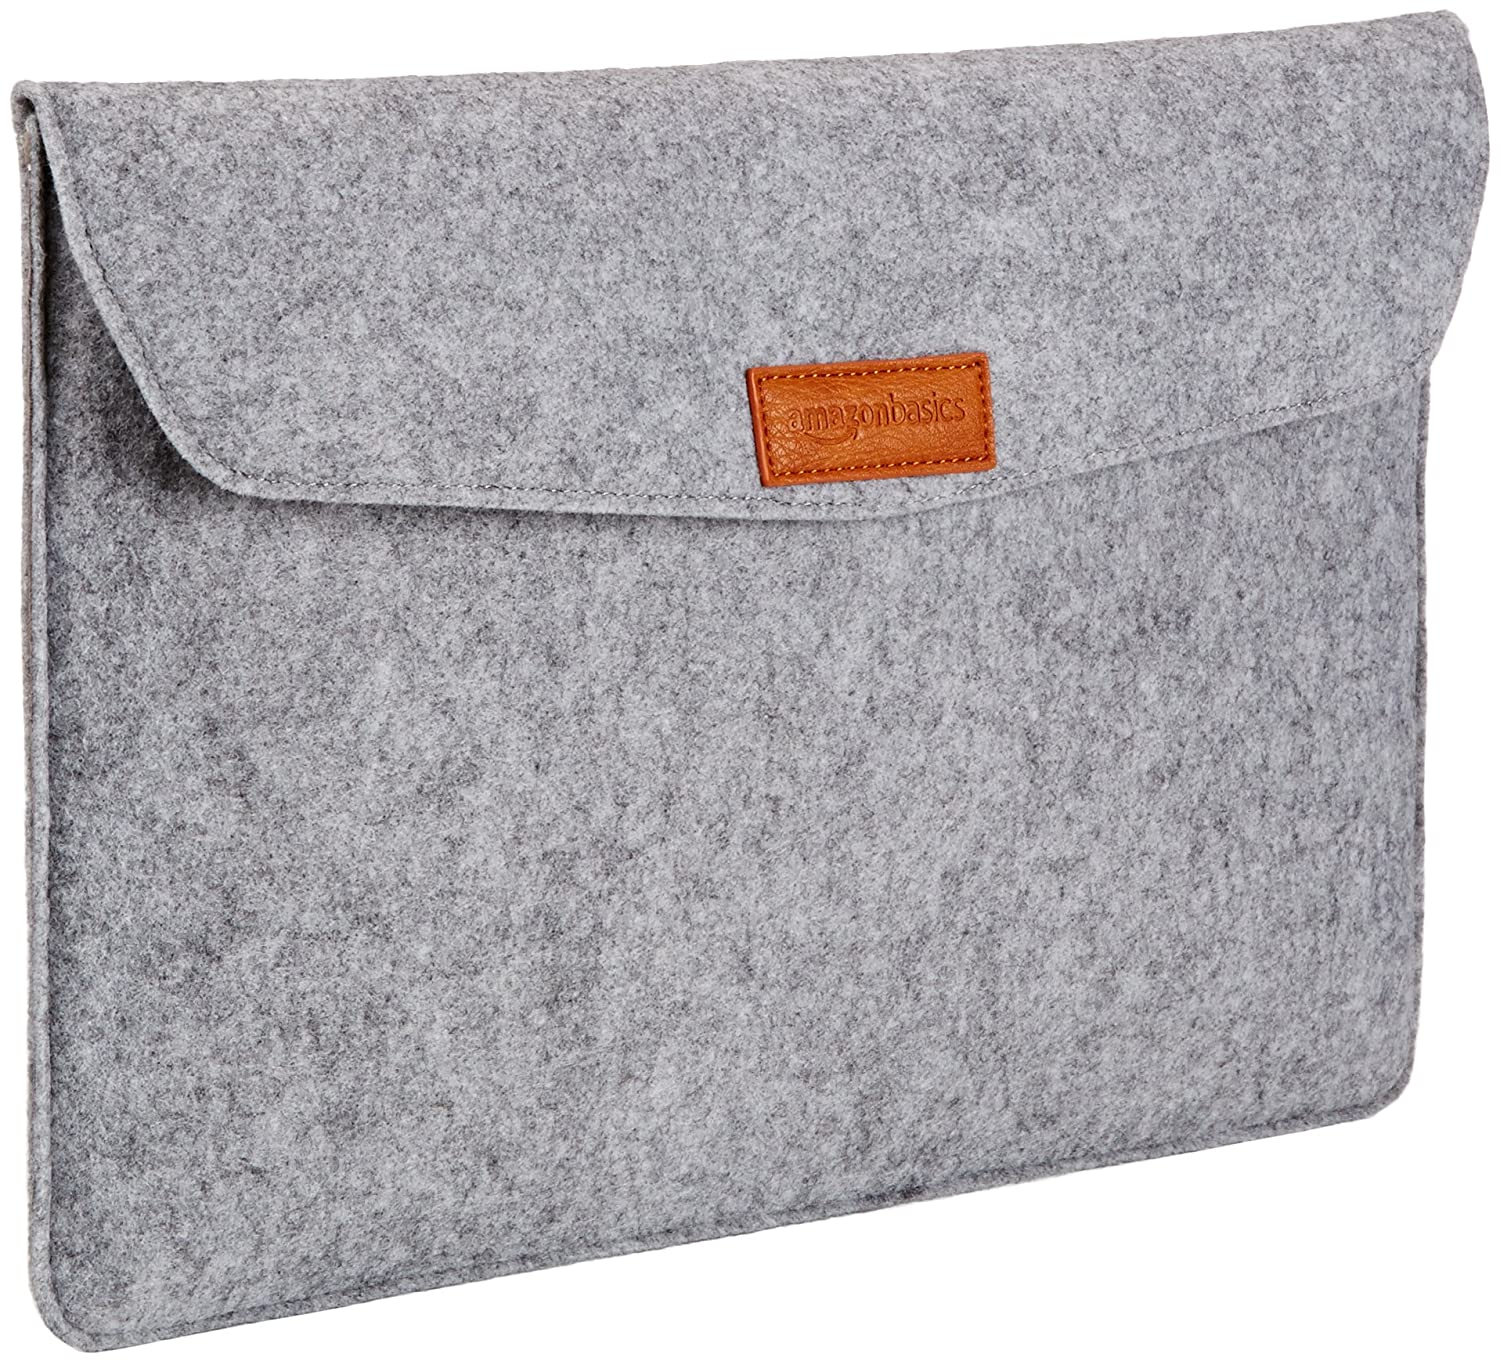 AmazonBasics 15.4-Inch Felt Laptop Sleeve - Light Grey